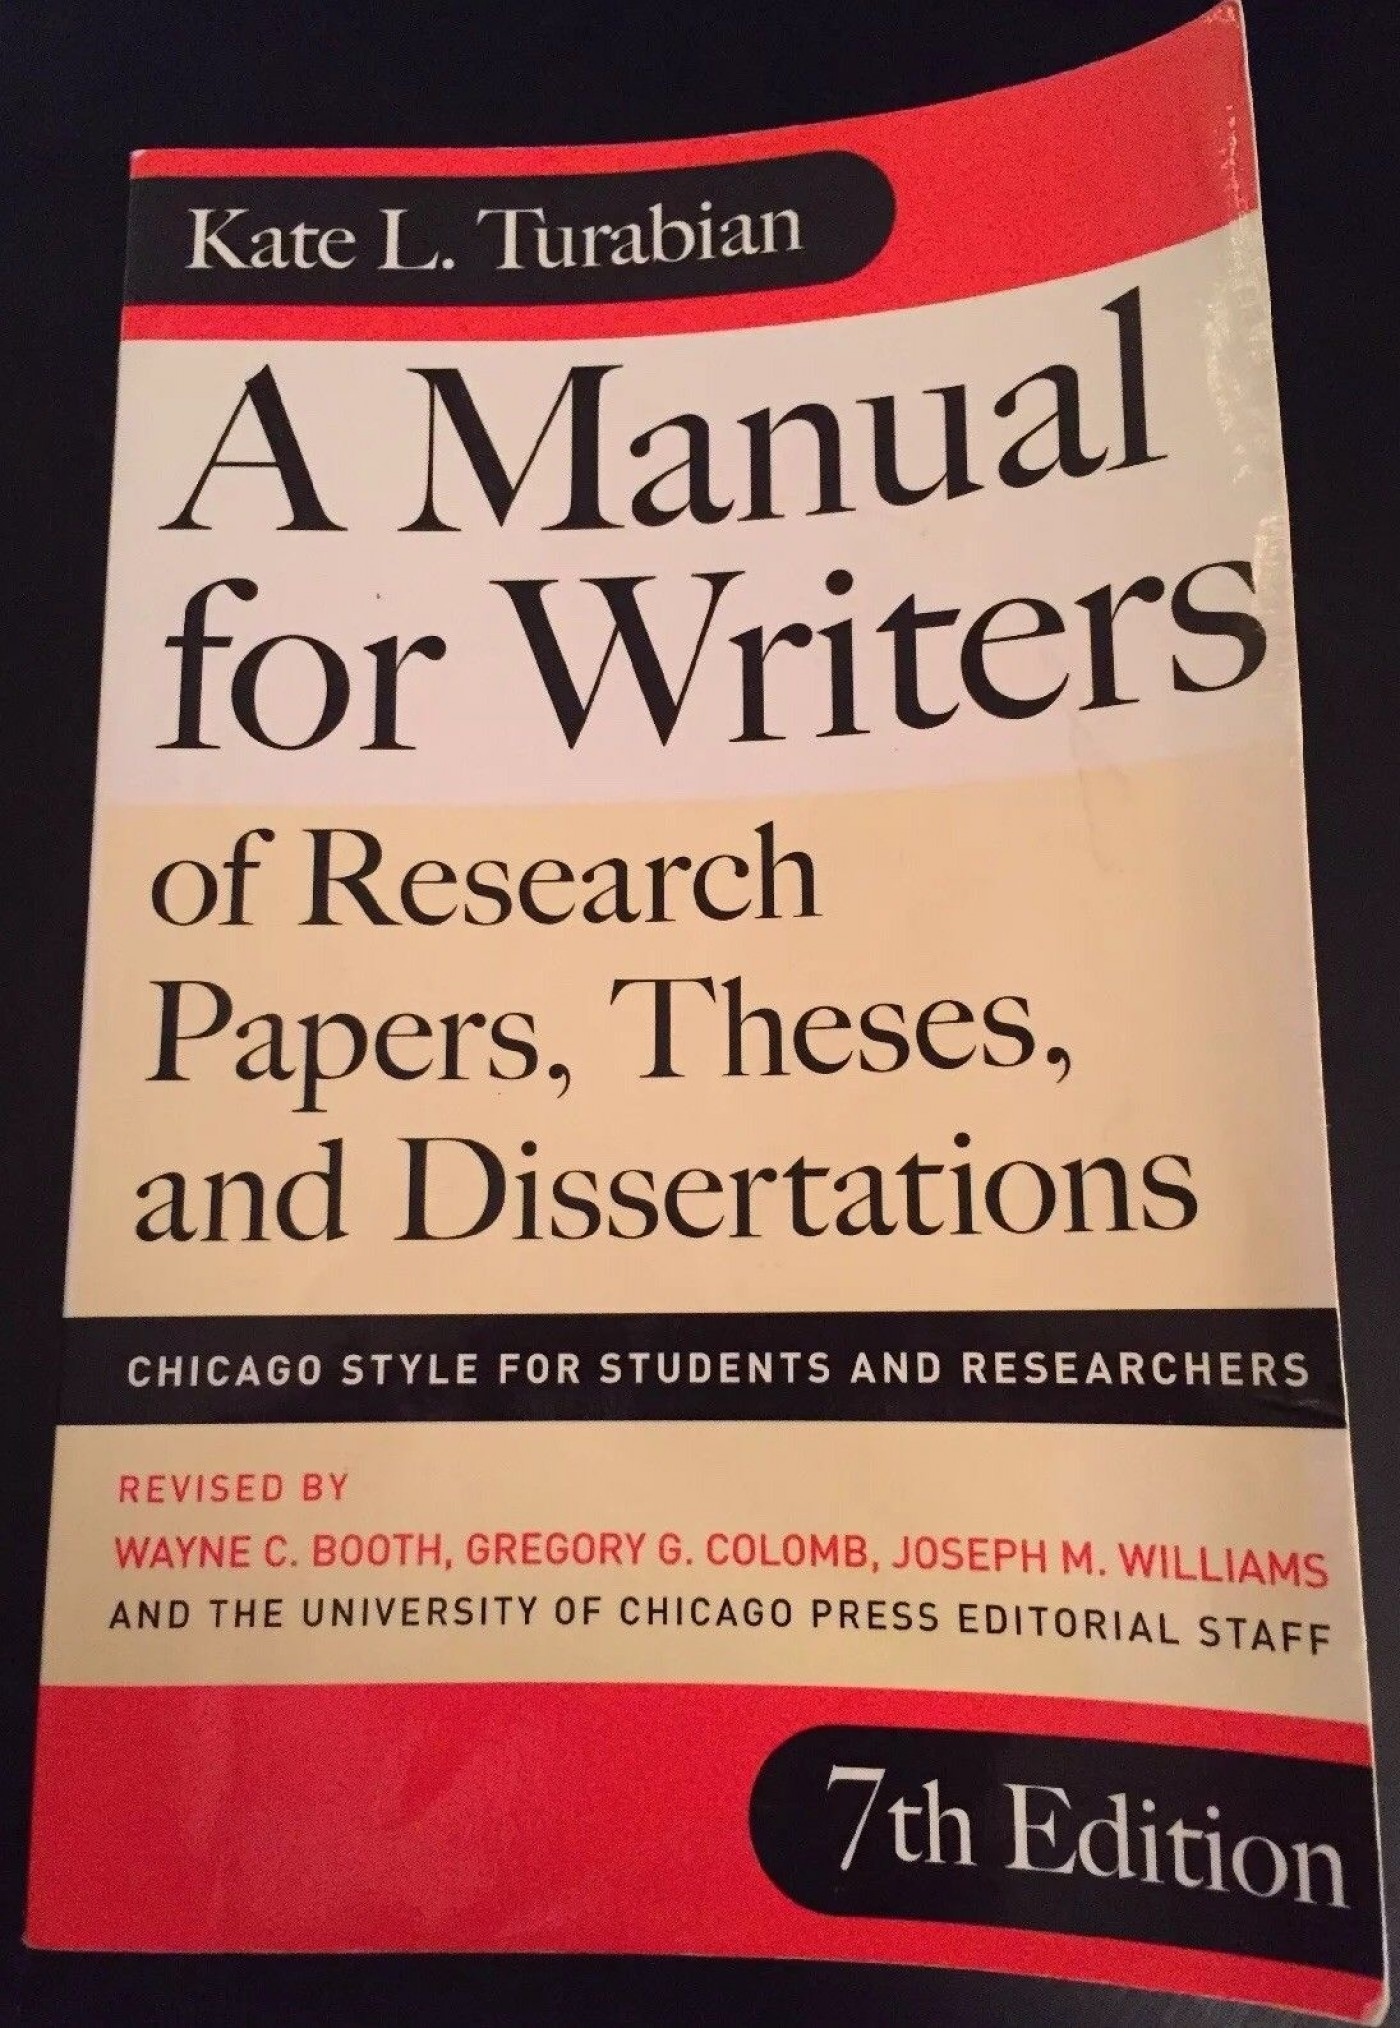 018 Research Paper Manual For Writers Of Papers Theses And Dissertations S Magnificent A Amazon 9th Edition 8th 13 1400